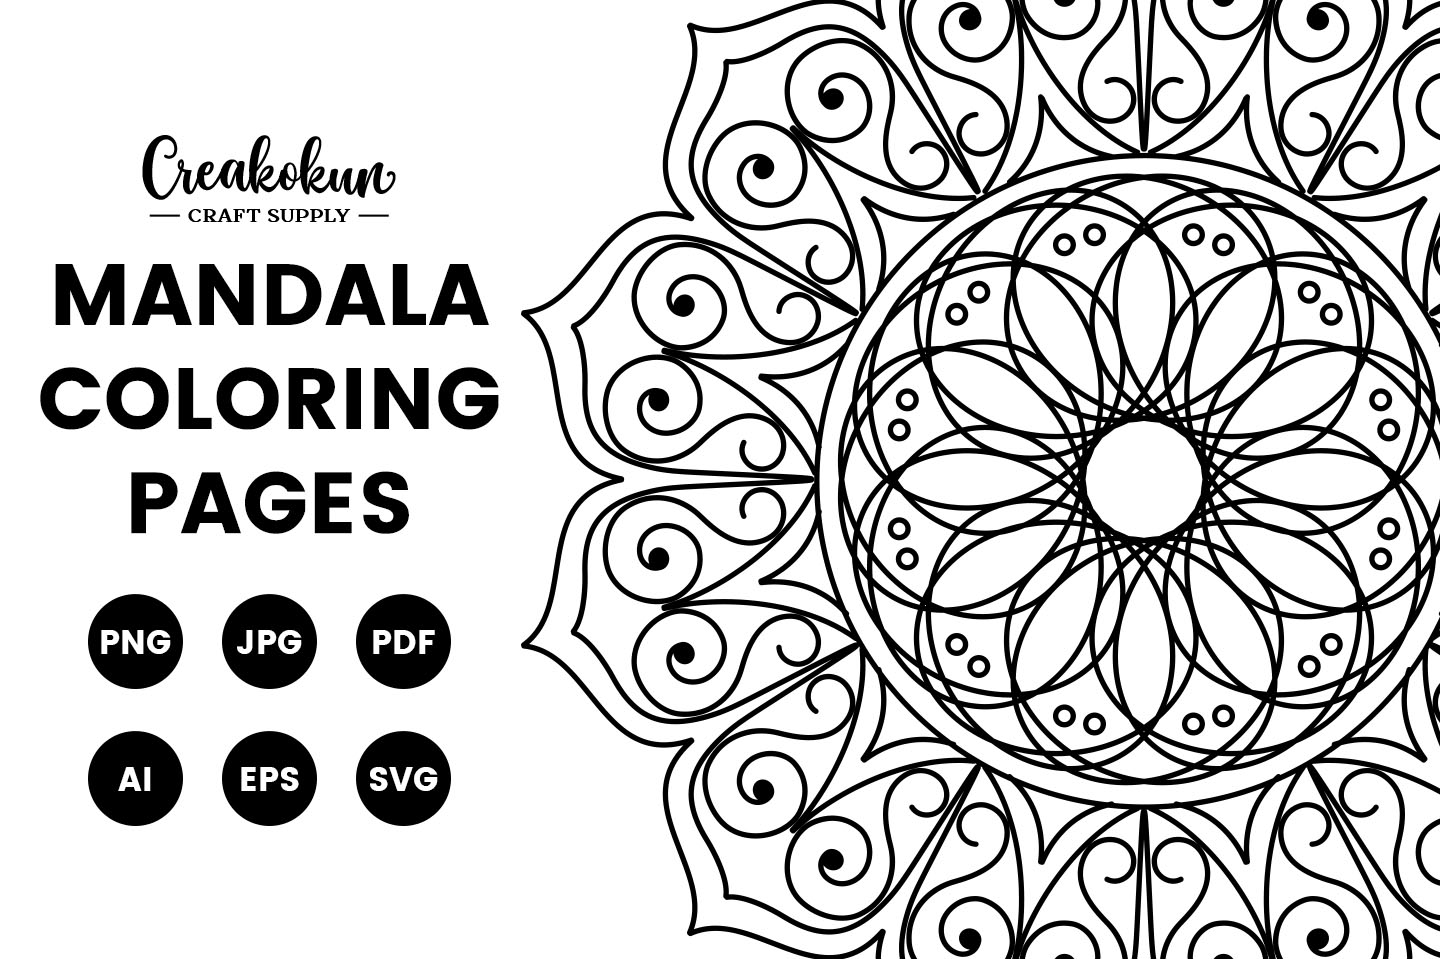 - Mandala Design Illustration - Coloring Pages